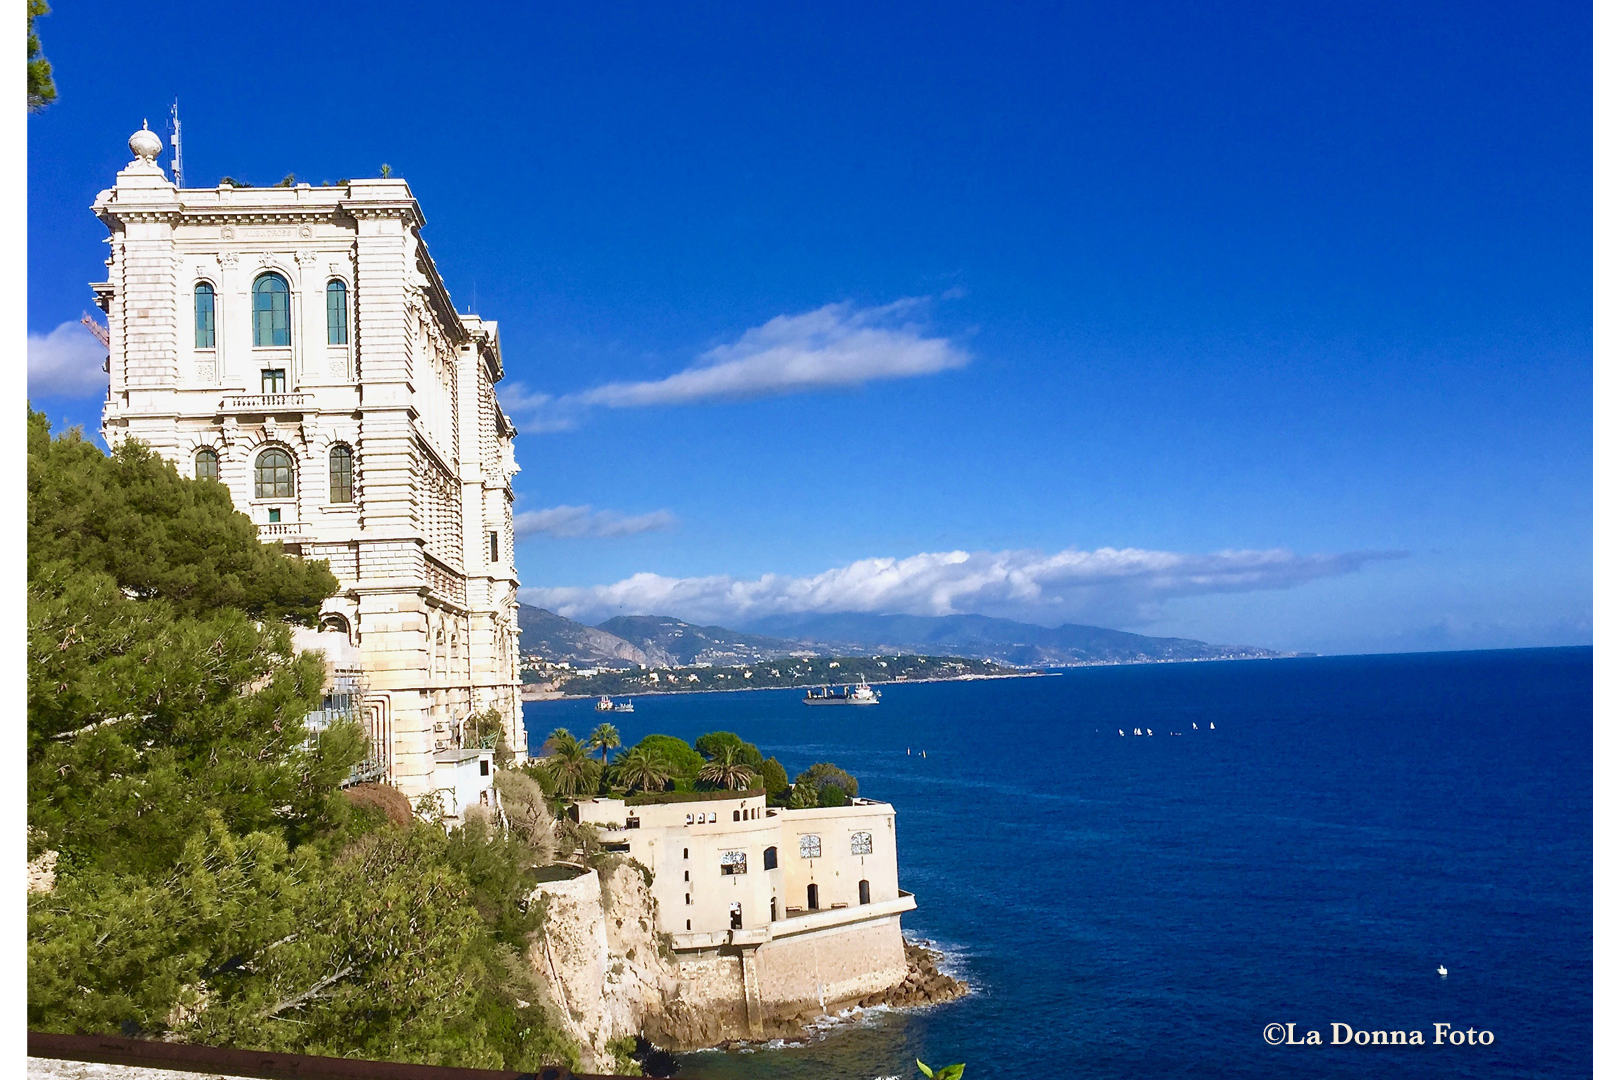 Living on the Edge, Monte Carlo - Italian Landscape Photography - La Donna Foto Houston, TX 77007